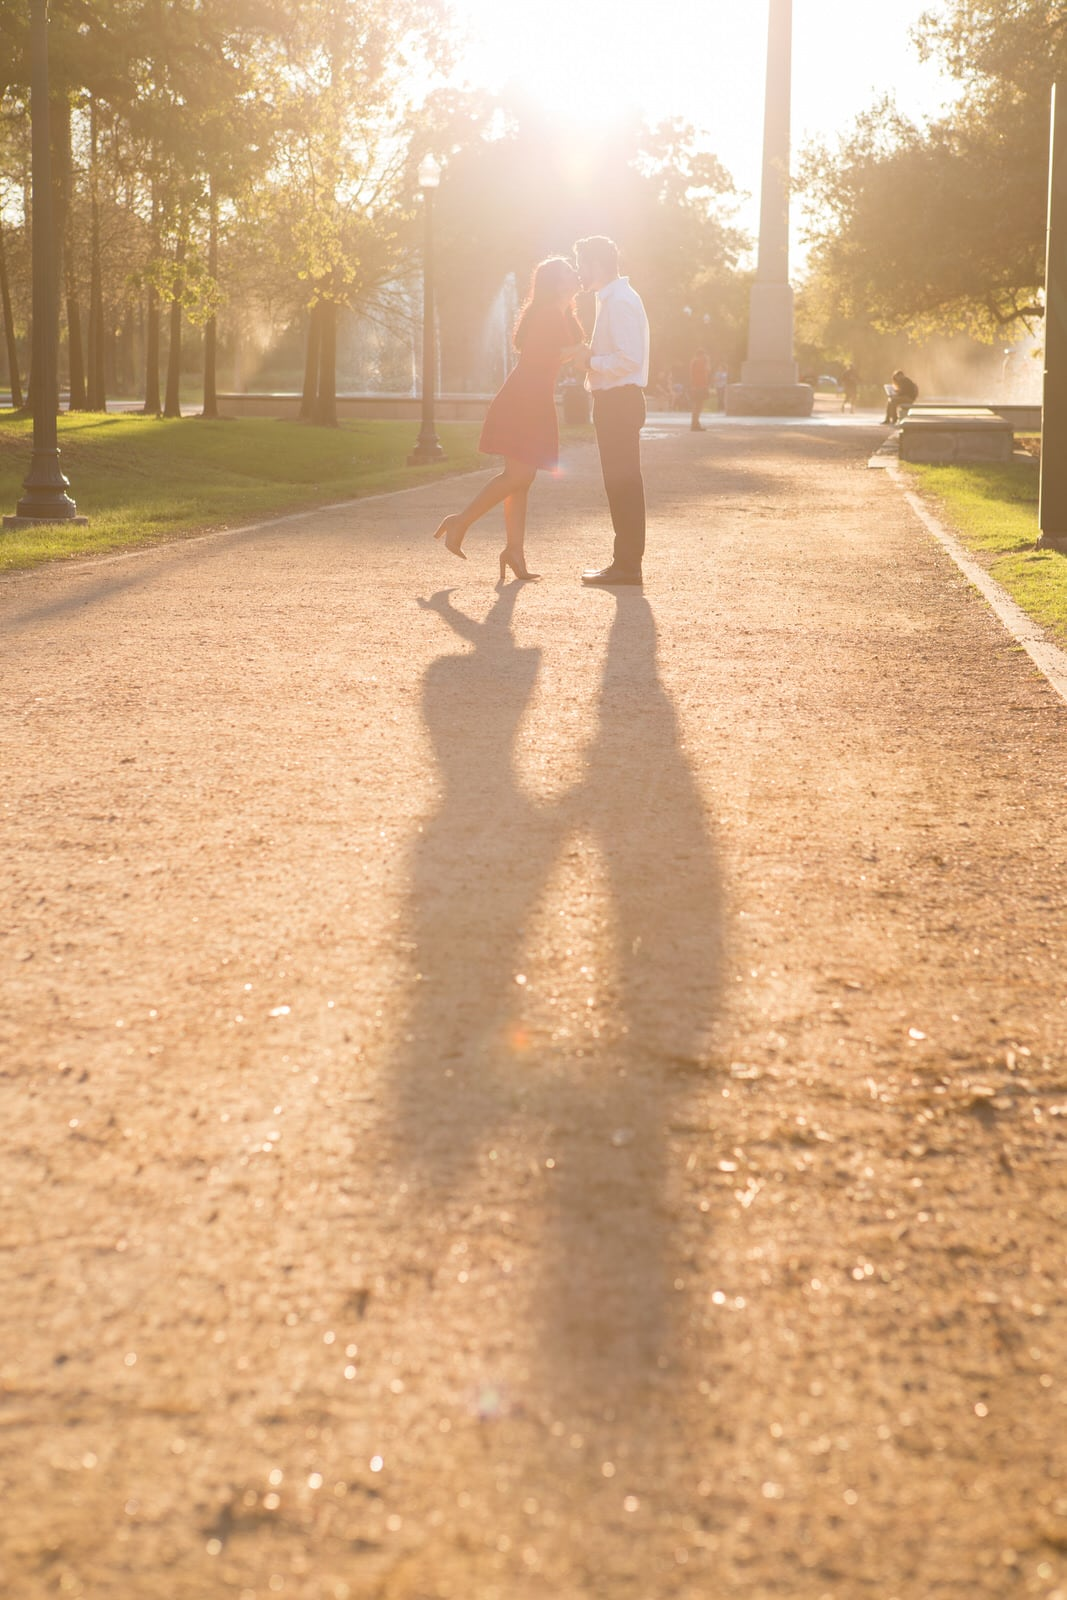 The couple is kissing as the sun is extending out their shadows.